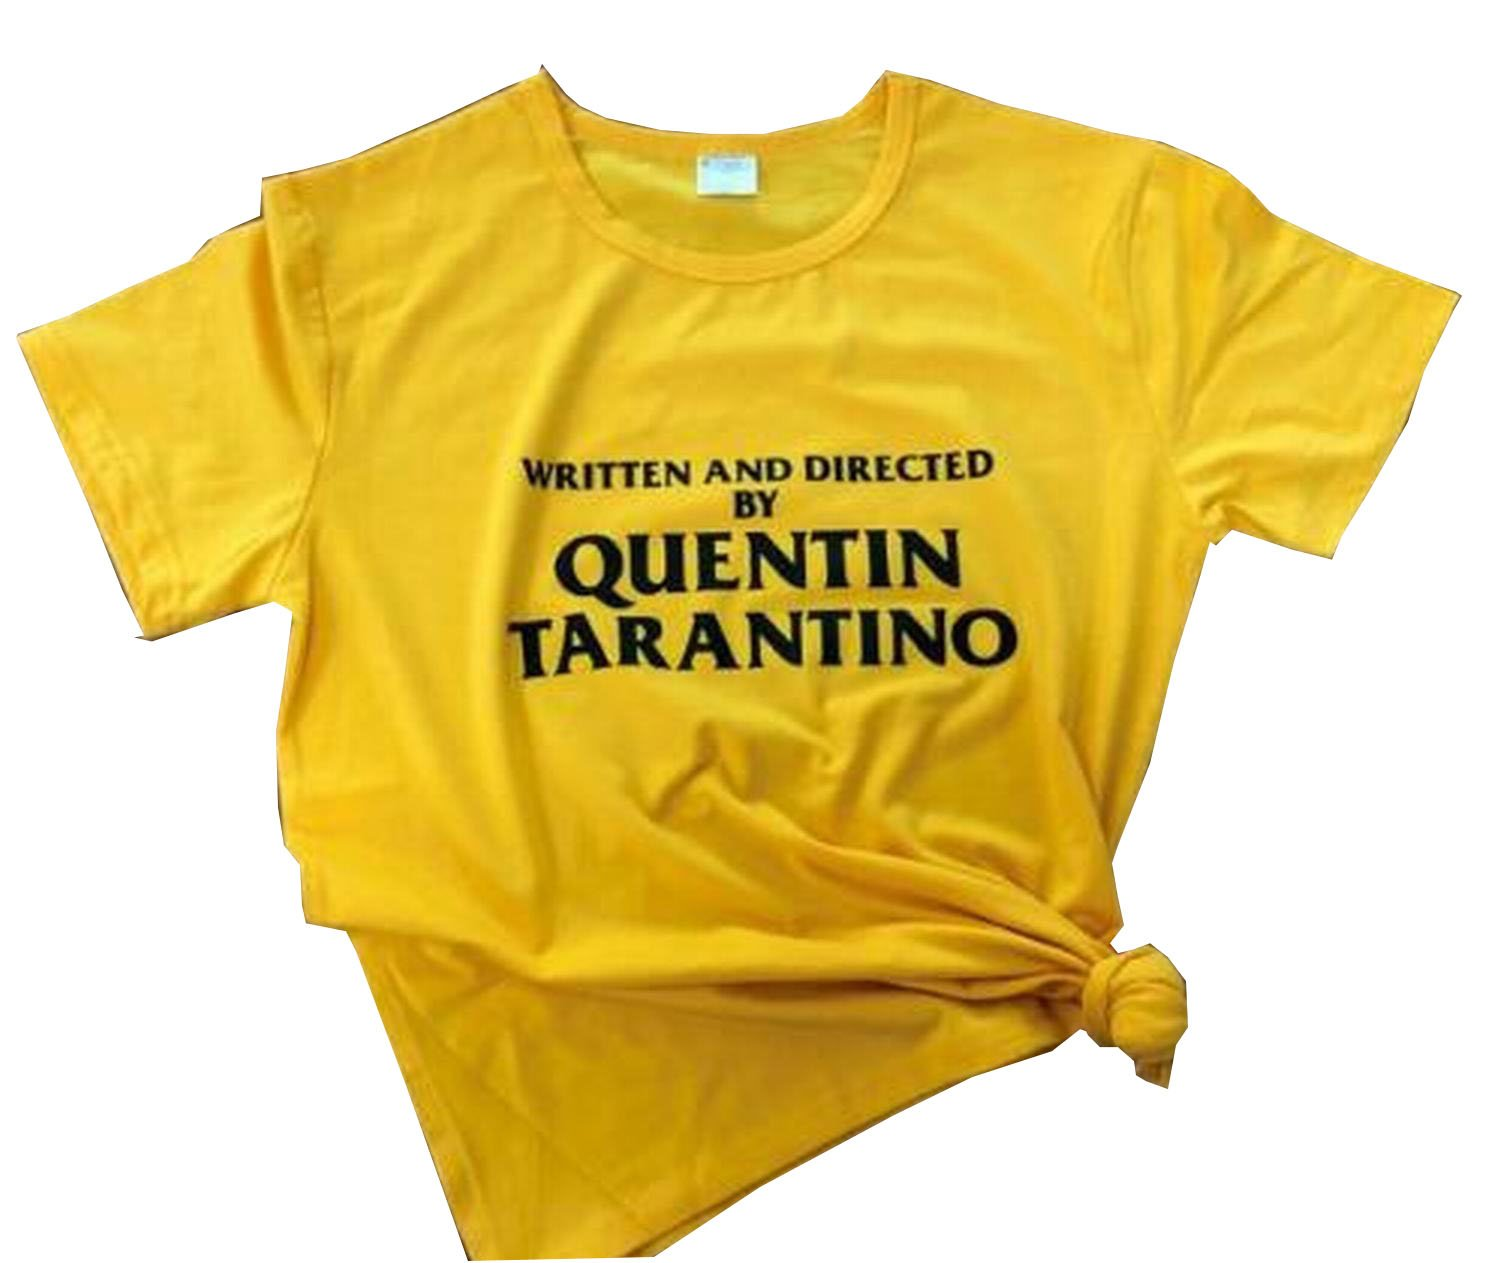 Women's Graphic Tshirts Written and Directed by Quentin Tarantino Printed Tops S Golden